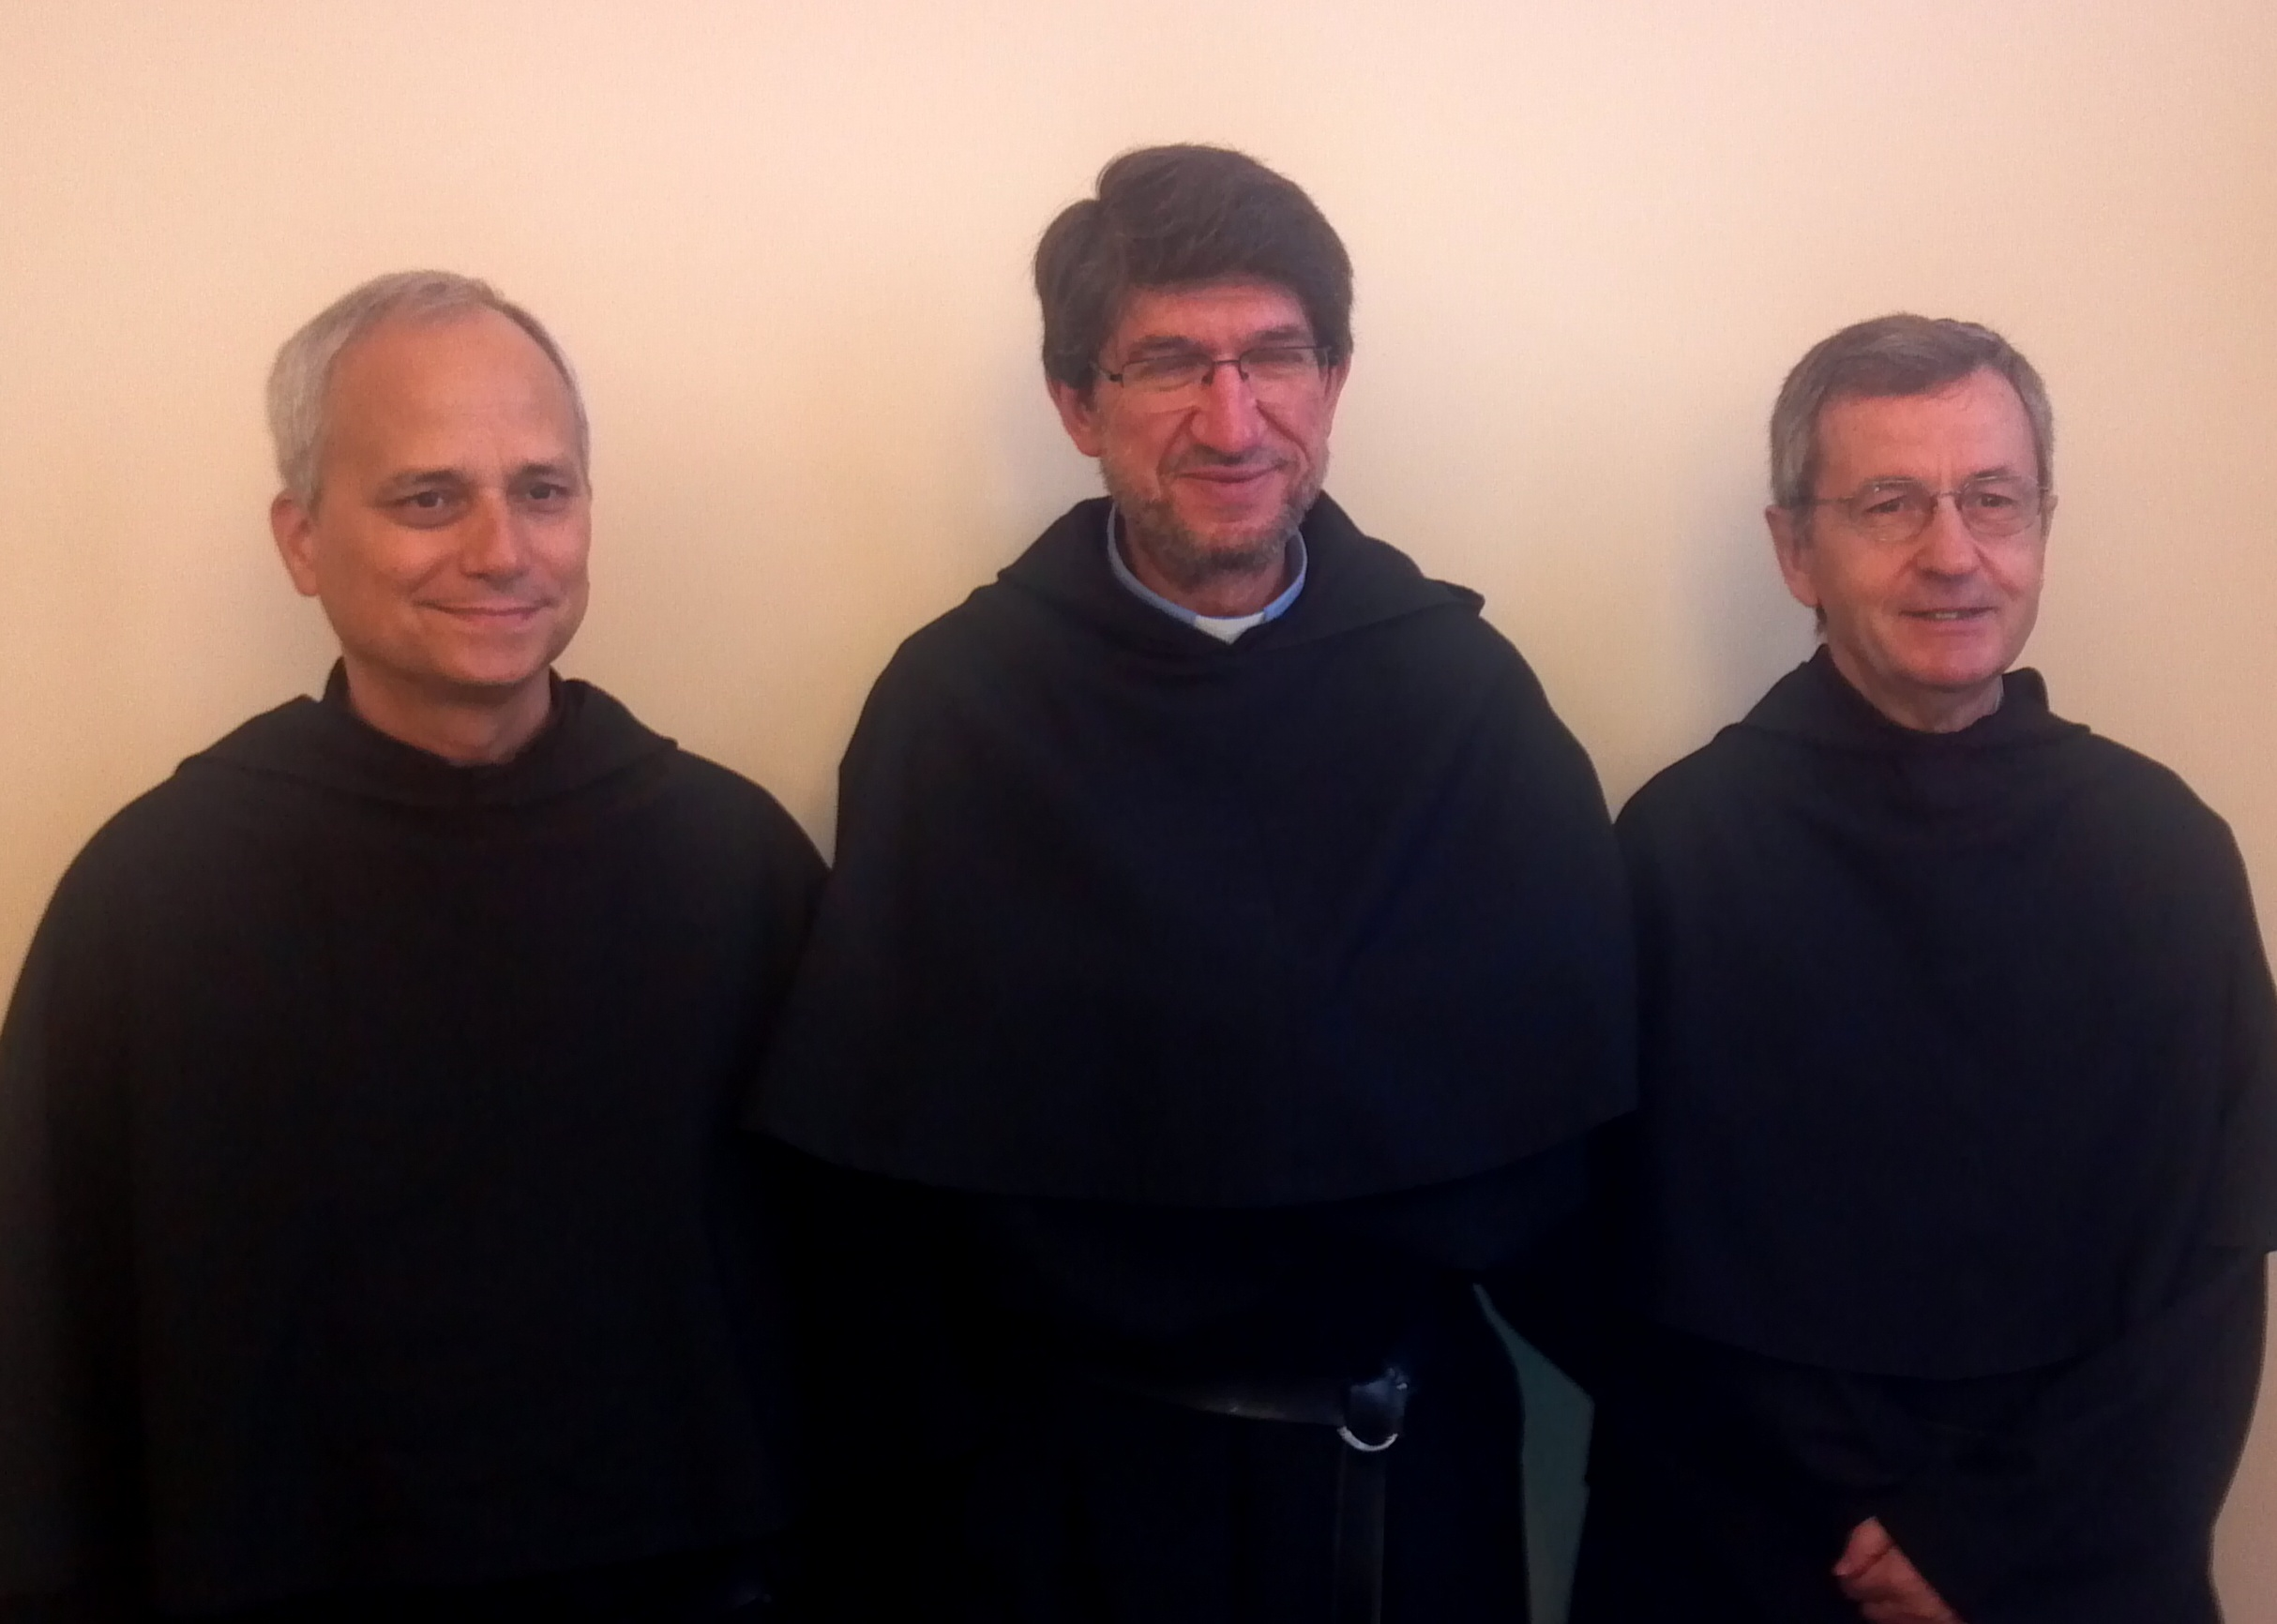 ROME, ITALY  (from left) : Rev. Robert F. Prevost, O.S.A., outgoing Prior General; Most Rev. Alejandro Moral, O.S.A., newly elected Prior General; Rev. Miguel Angel Orcasitas, O.S.A., former Prior General